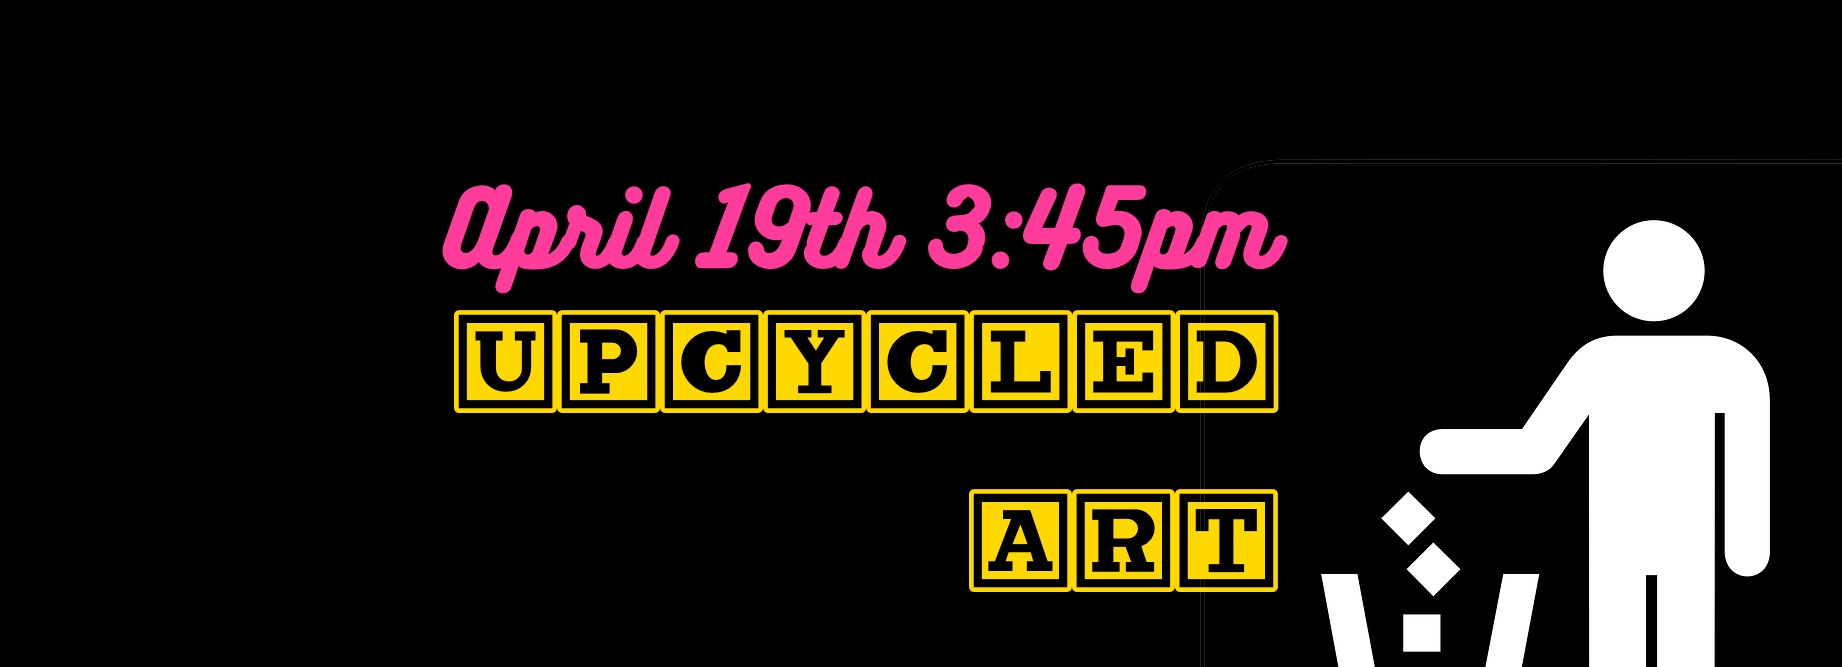 Upcycled Art April 19th 3:45 pm